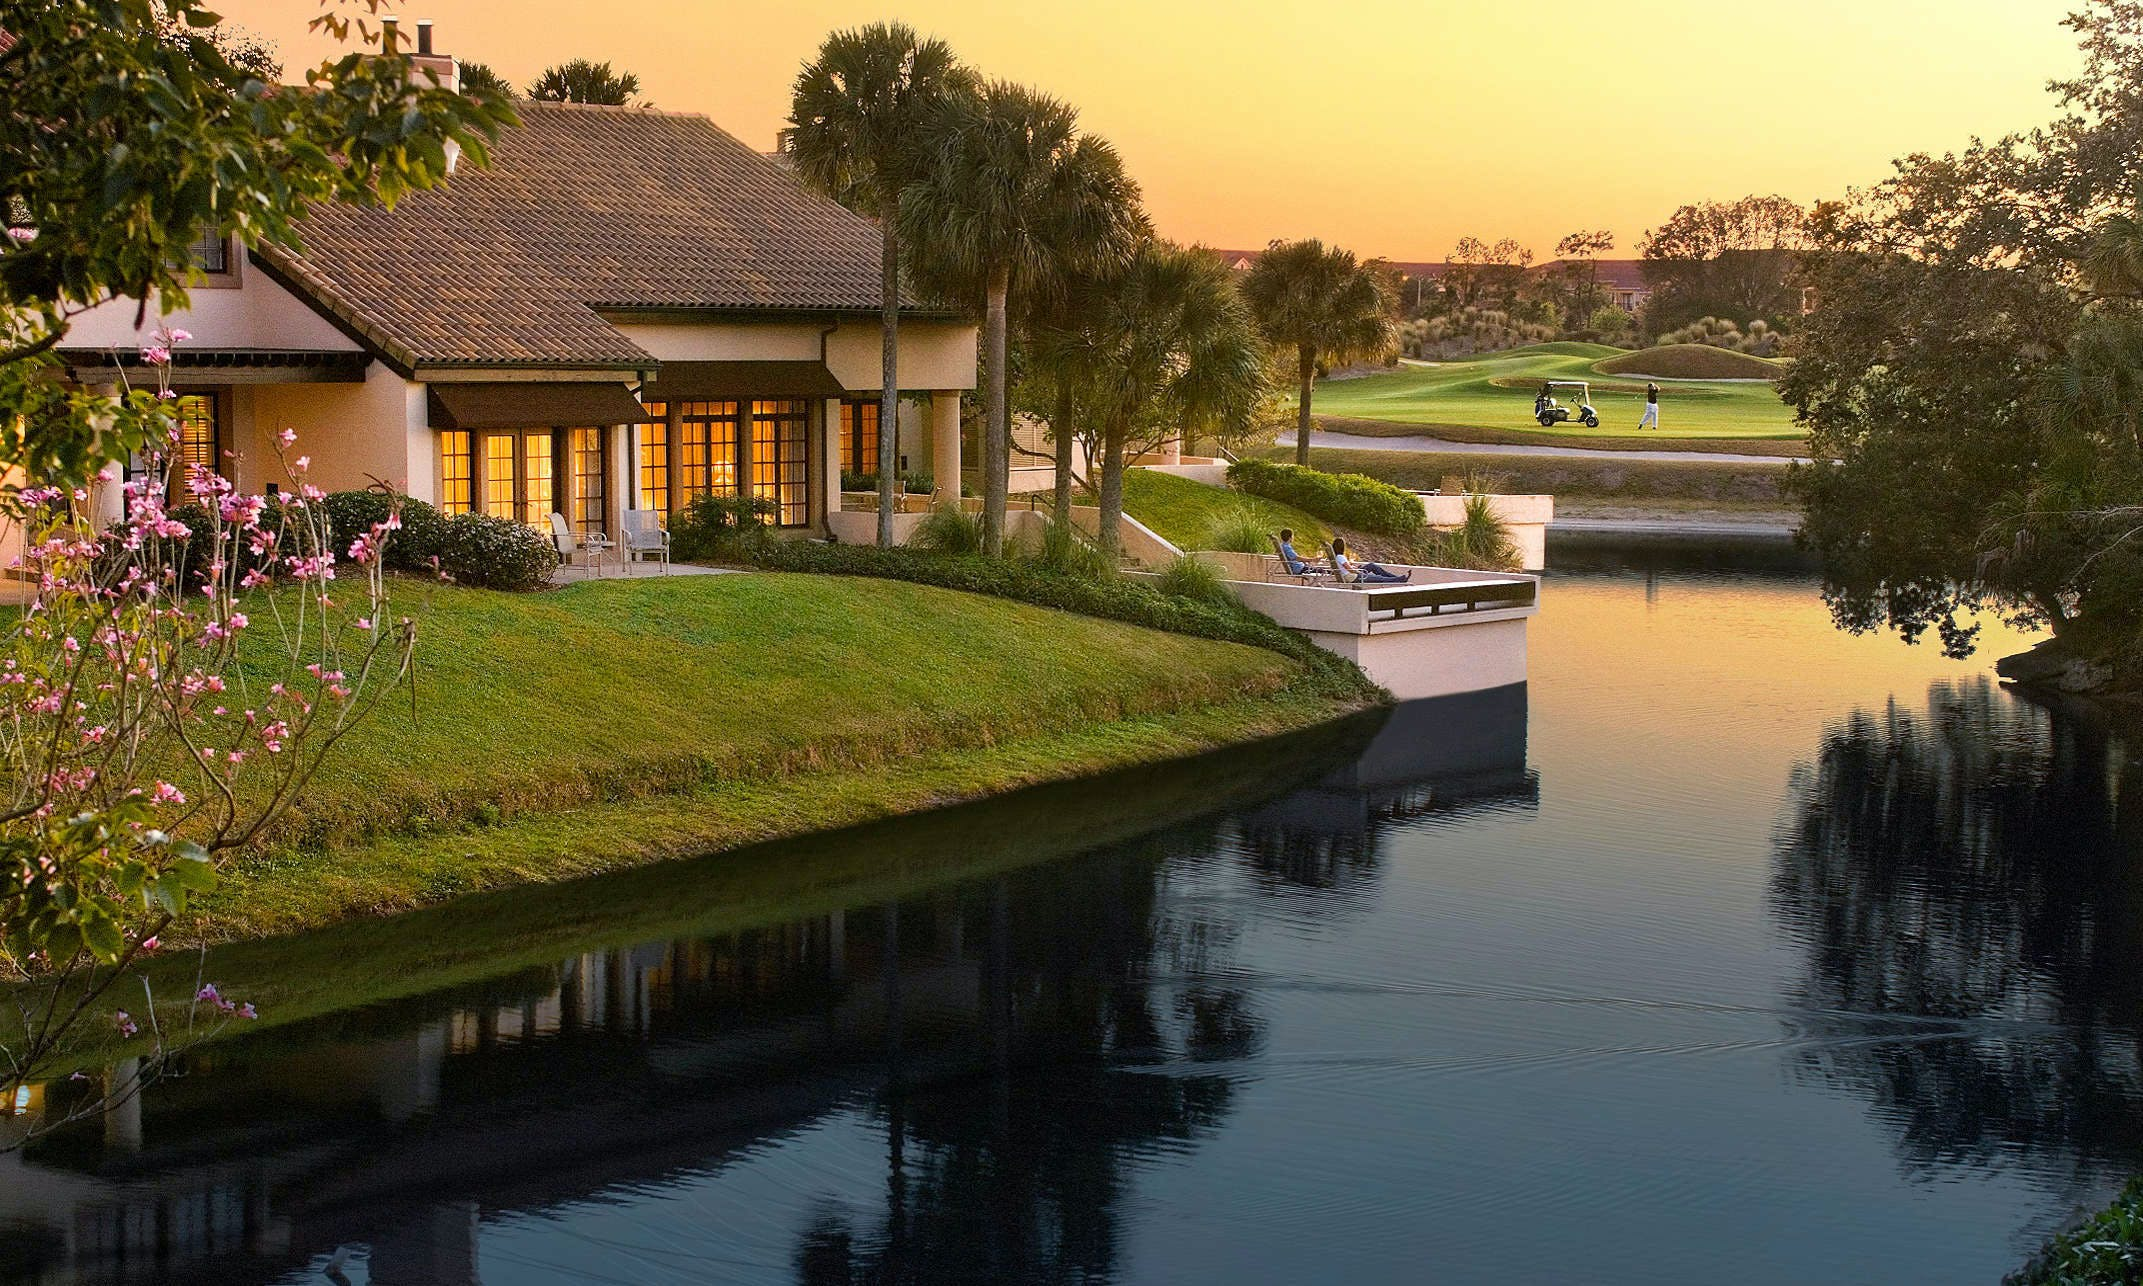 The Villas of Grand Cypress